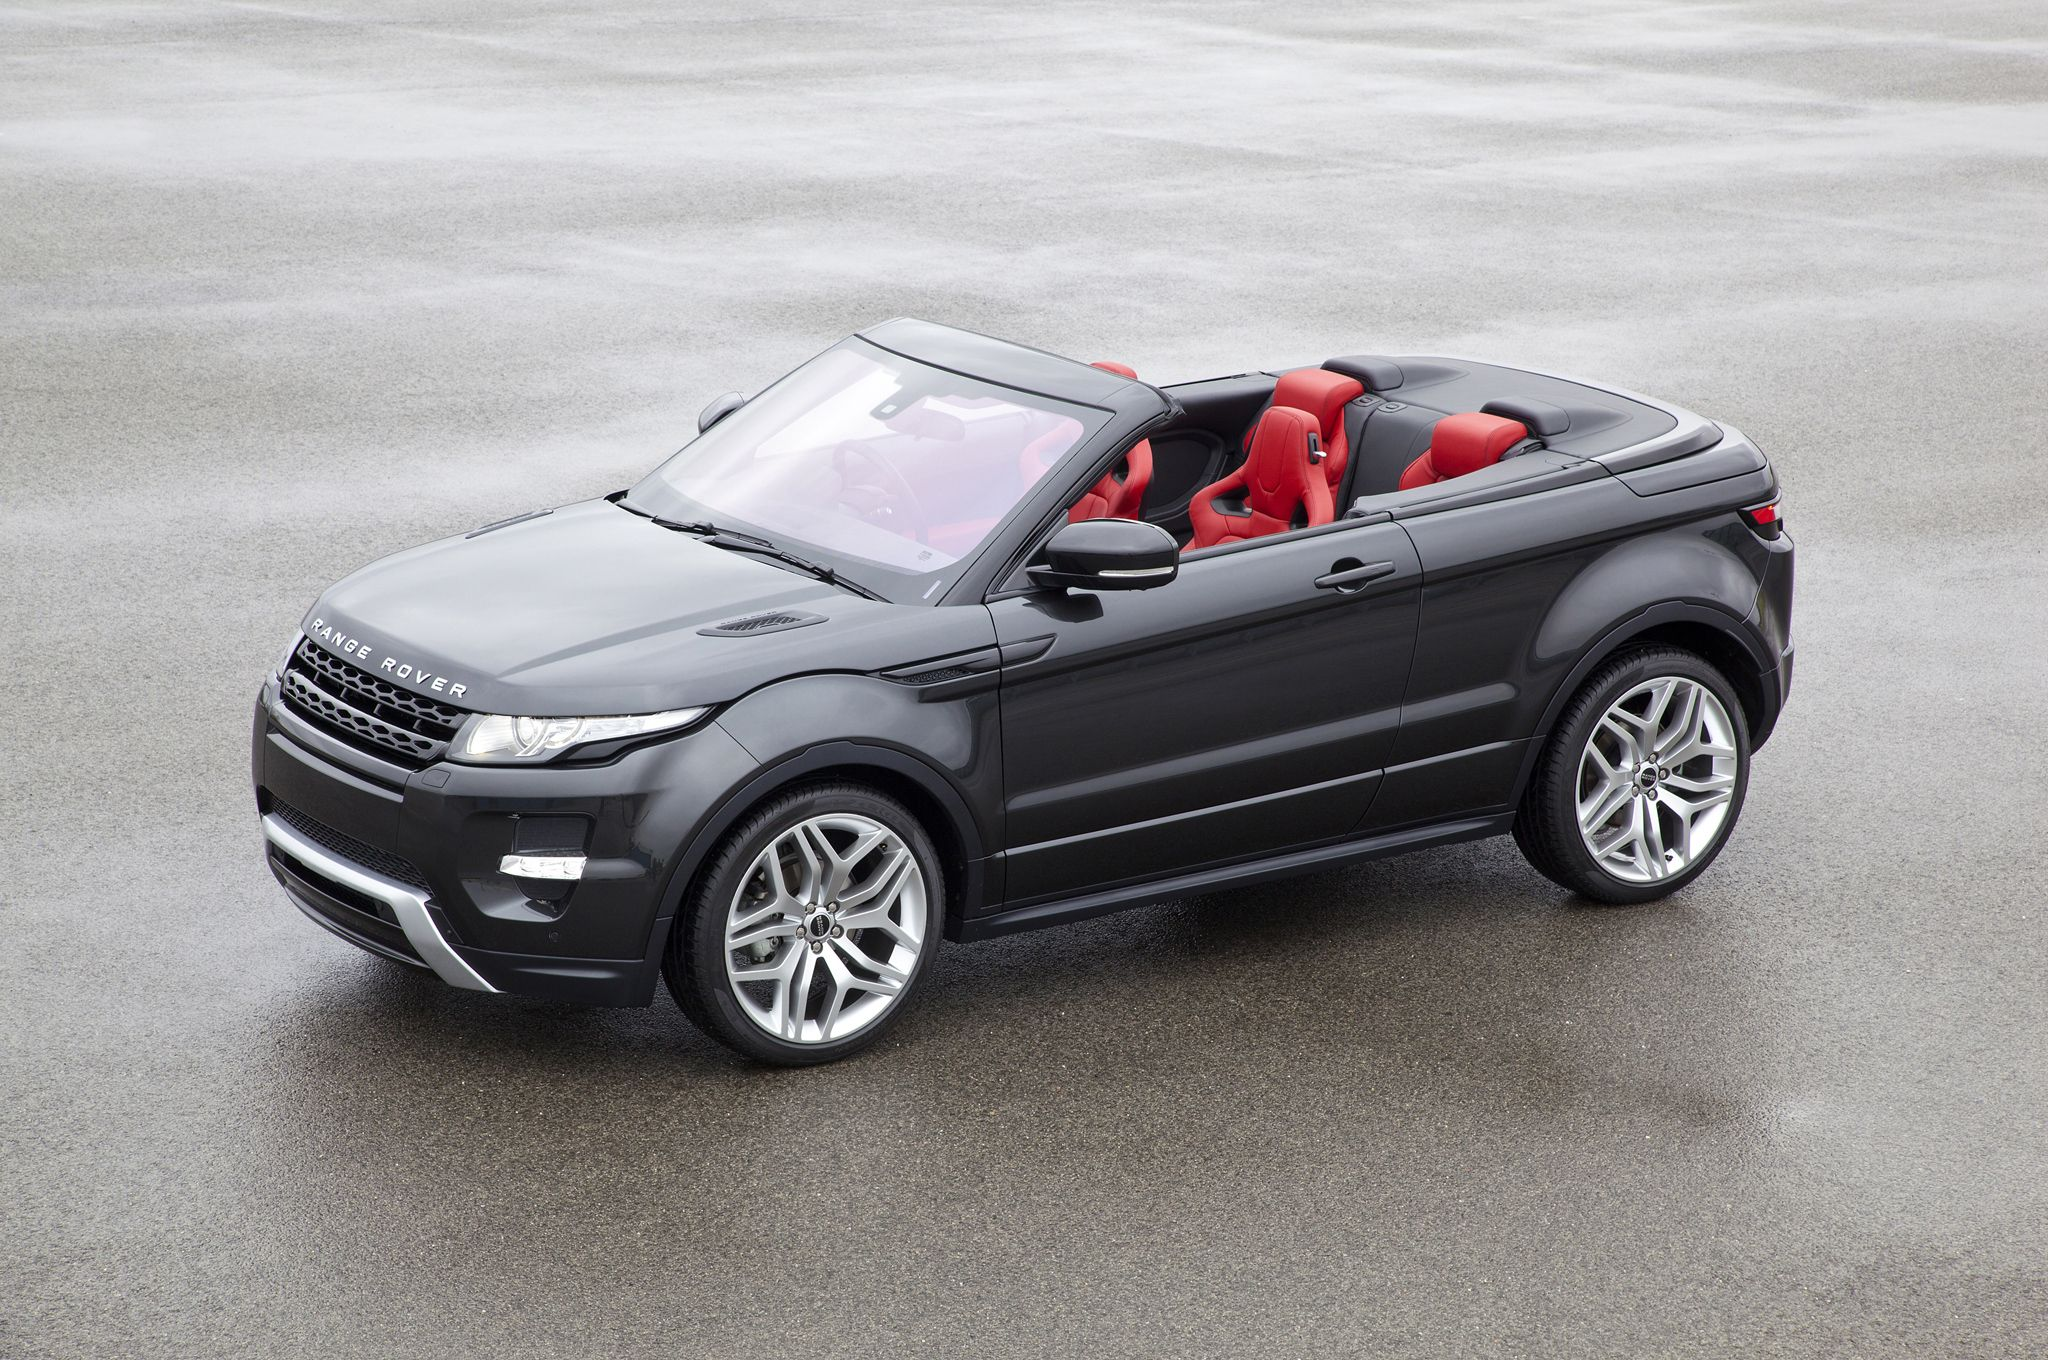 Land Rover is ing out with a new drop top SUV